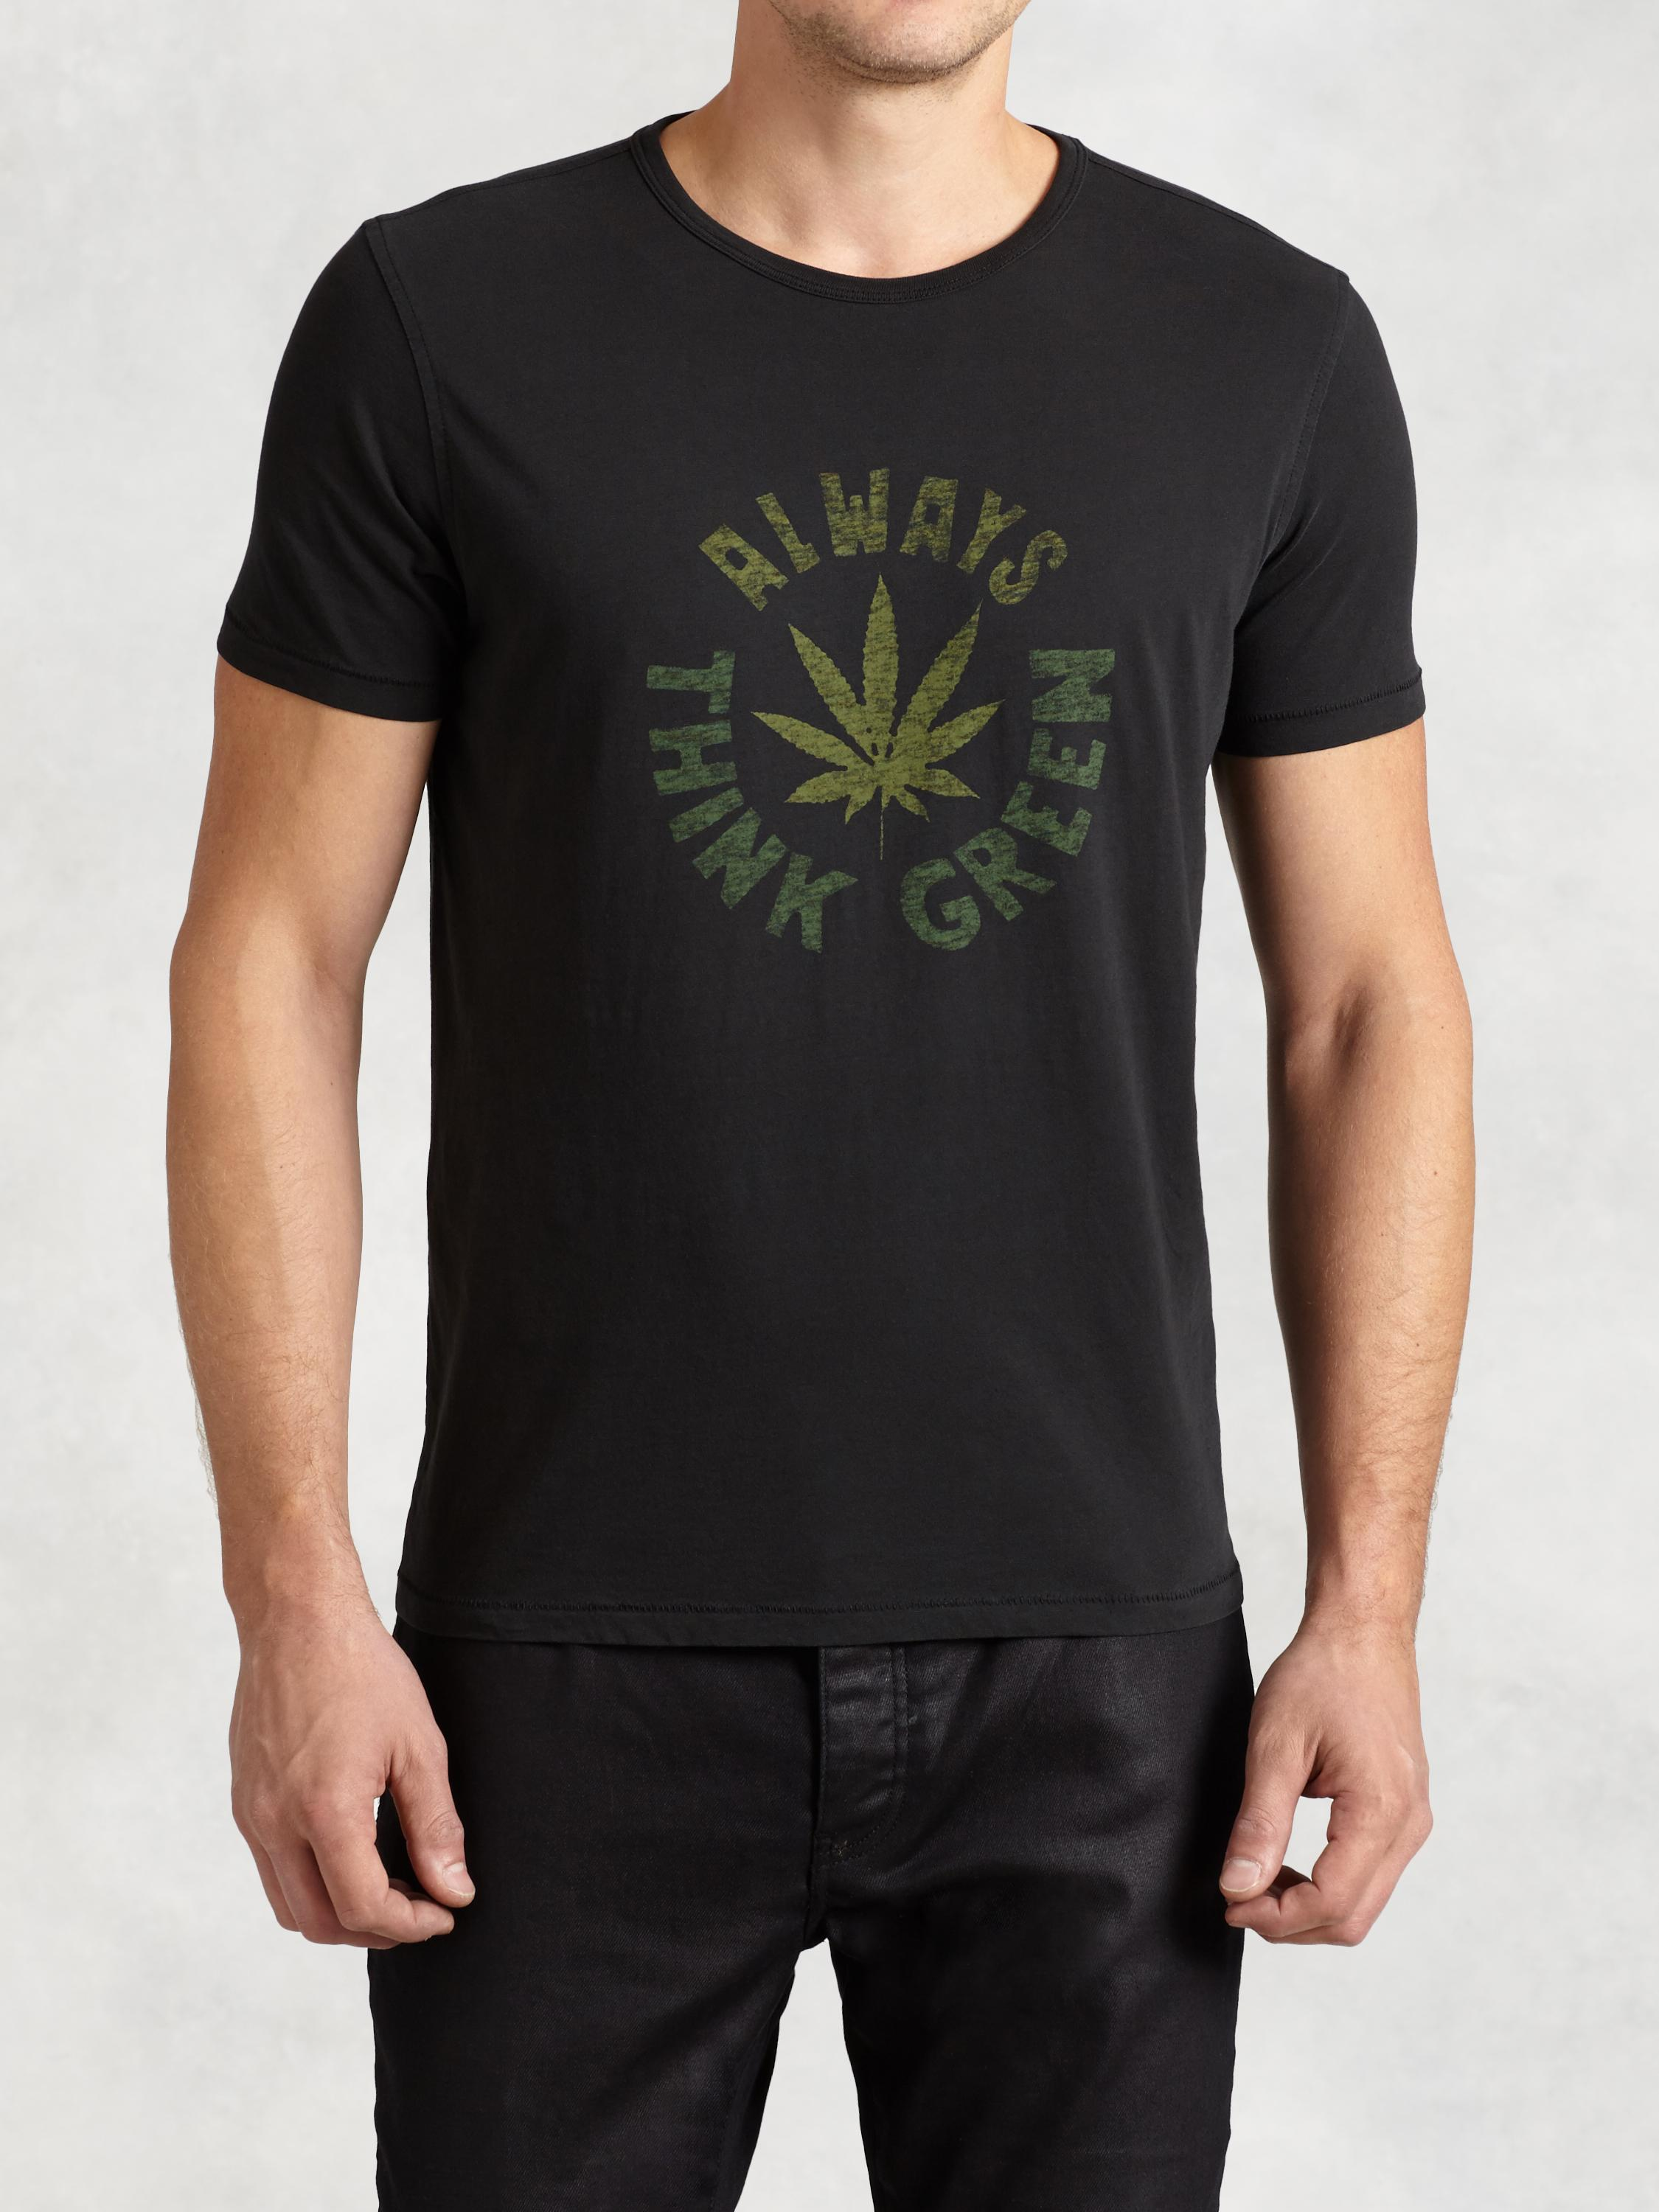 Always Think Green Graphic Tee